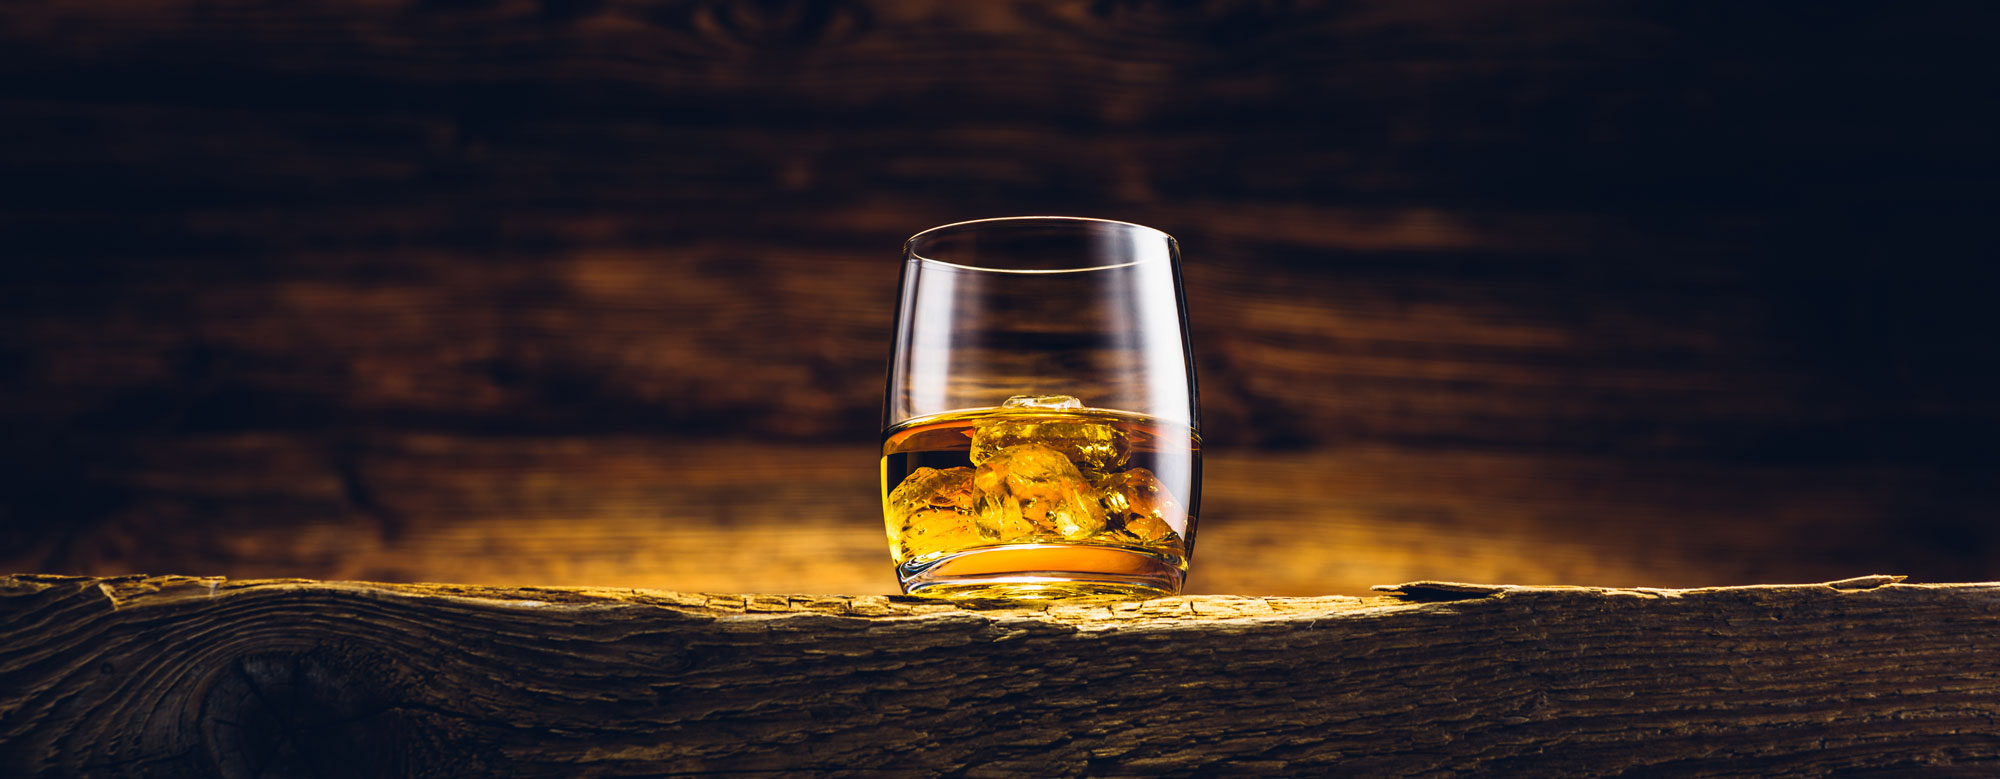 Royal Thistle Whisky in Glass